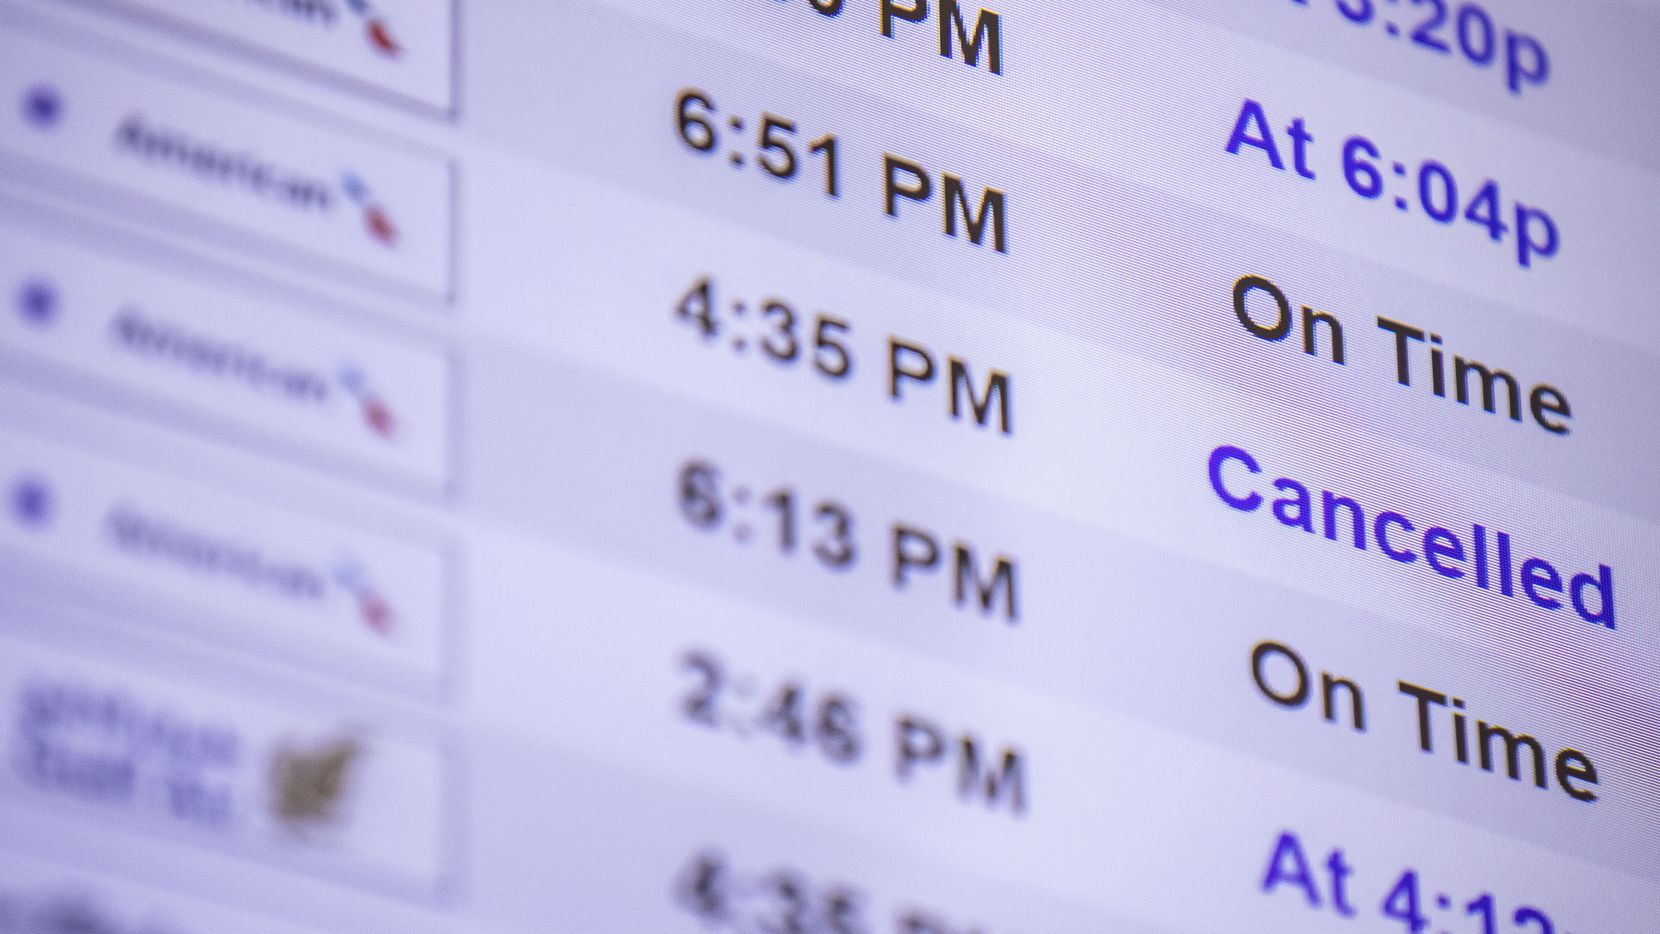 A screen shows a cancelled American Airlines flight in Terminal A of DFW Airport on Monday, July 21, 2021.